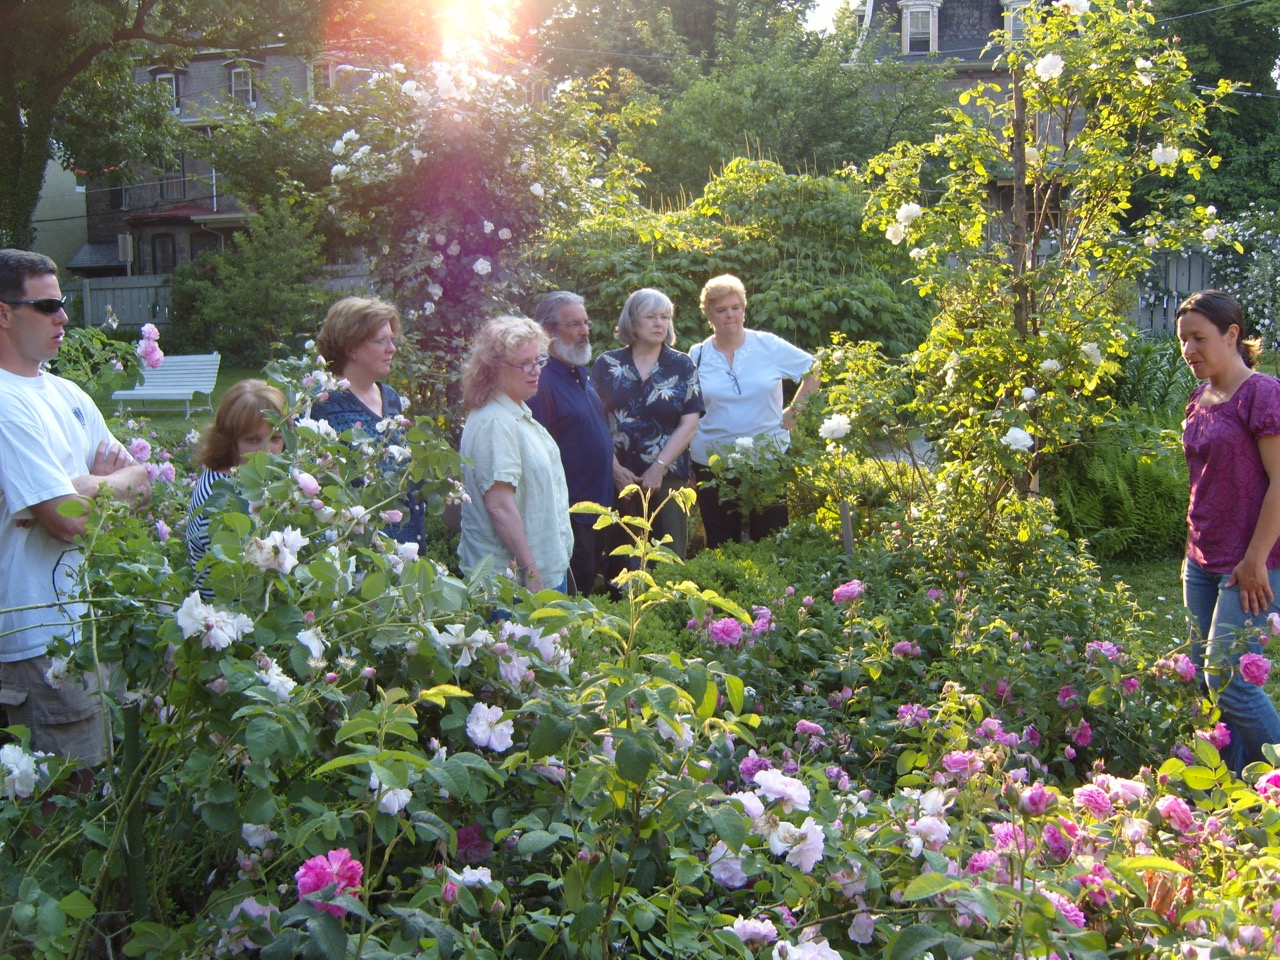 Visitors to the Wyck Rose Garden, Wyck Association